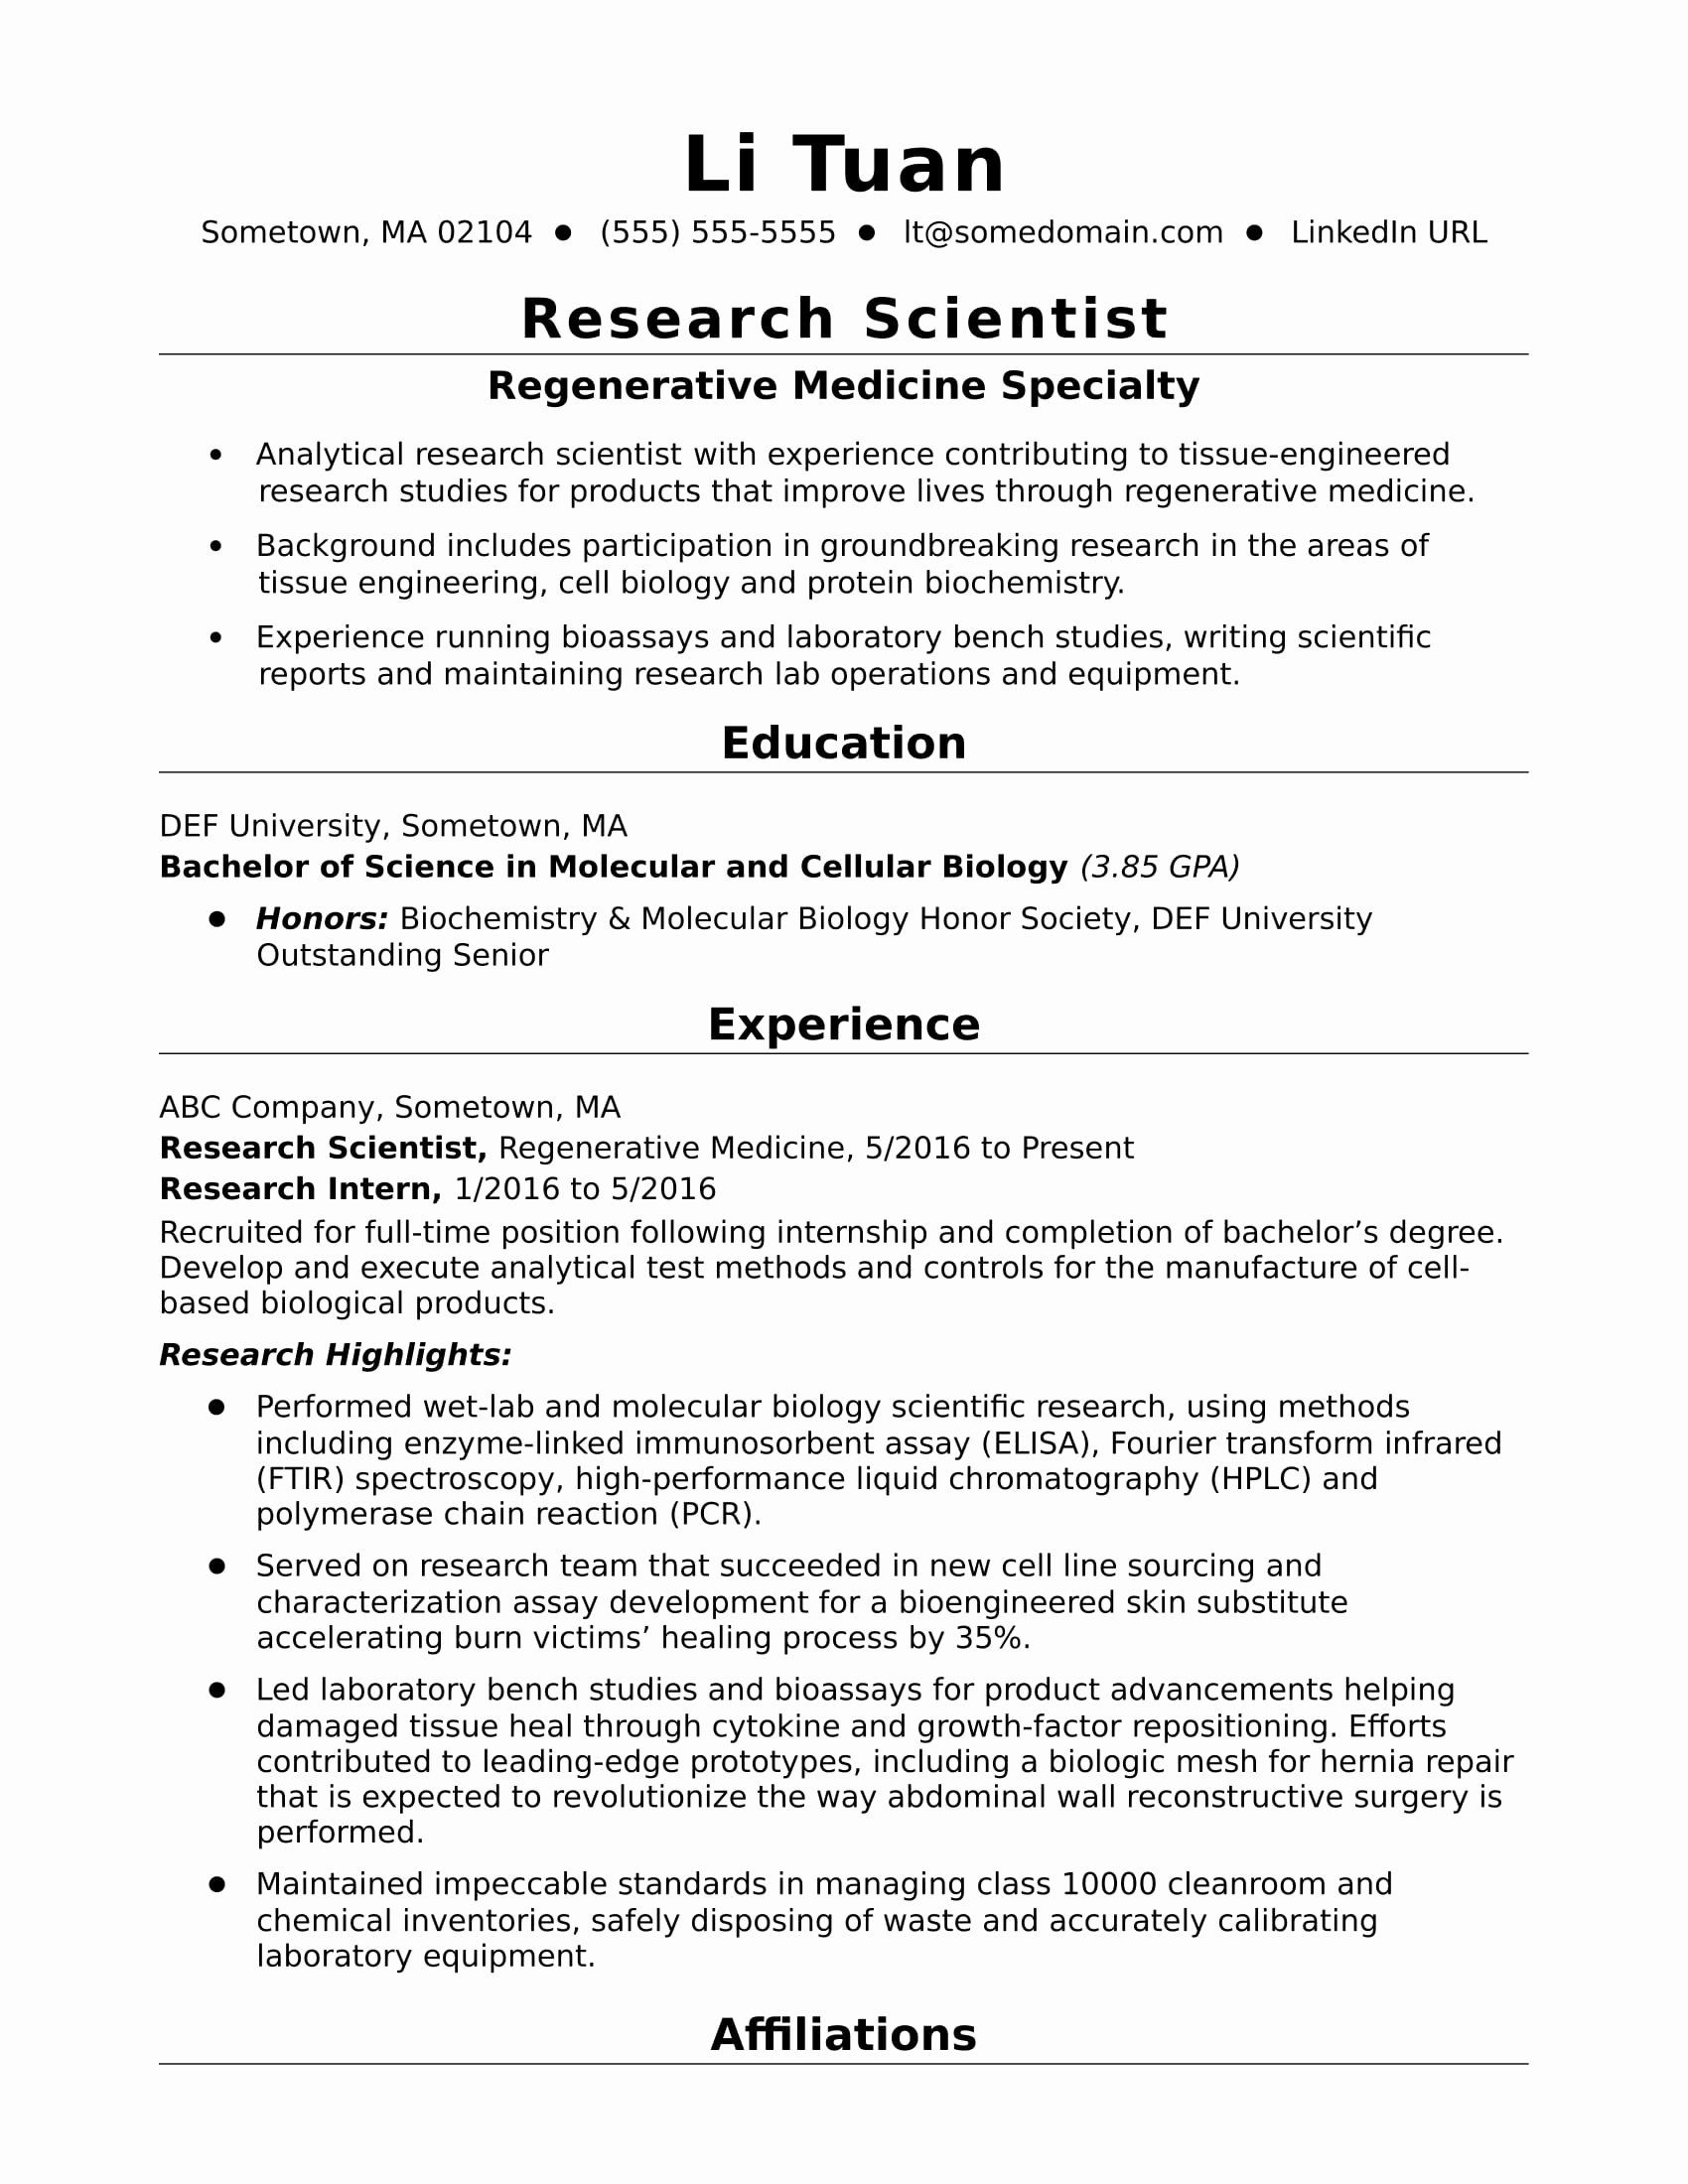 Entry Level Biology Resume Lovely Entry Level Research Scientist Resume Sample Research Scientist Resume Examples Job Resume Examples